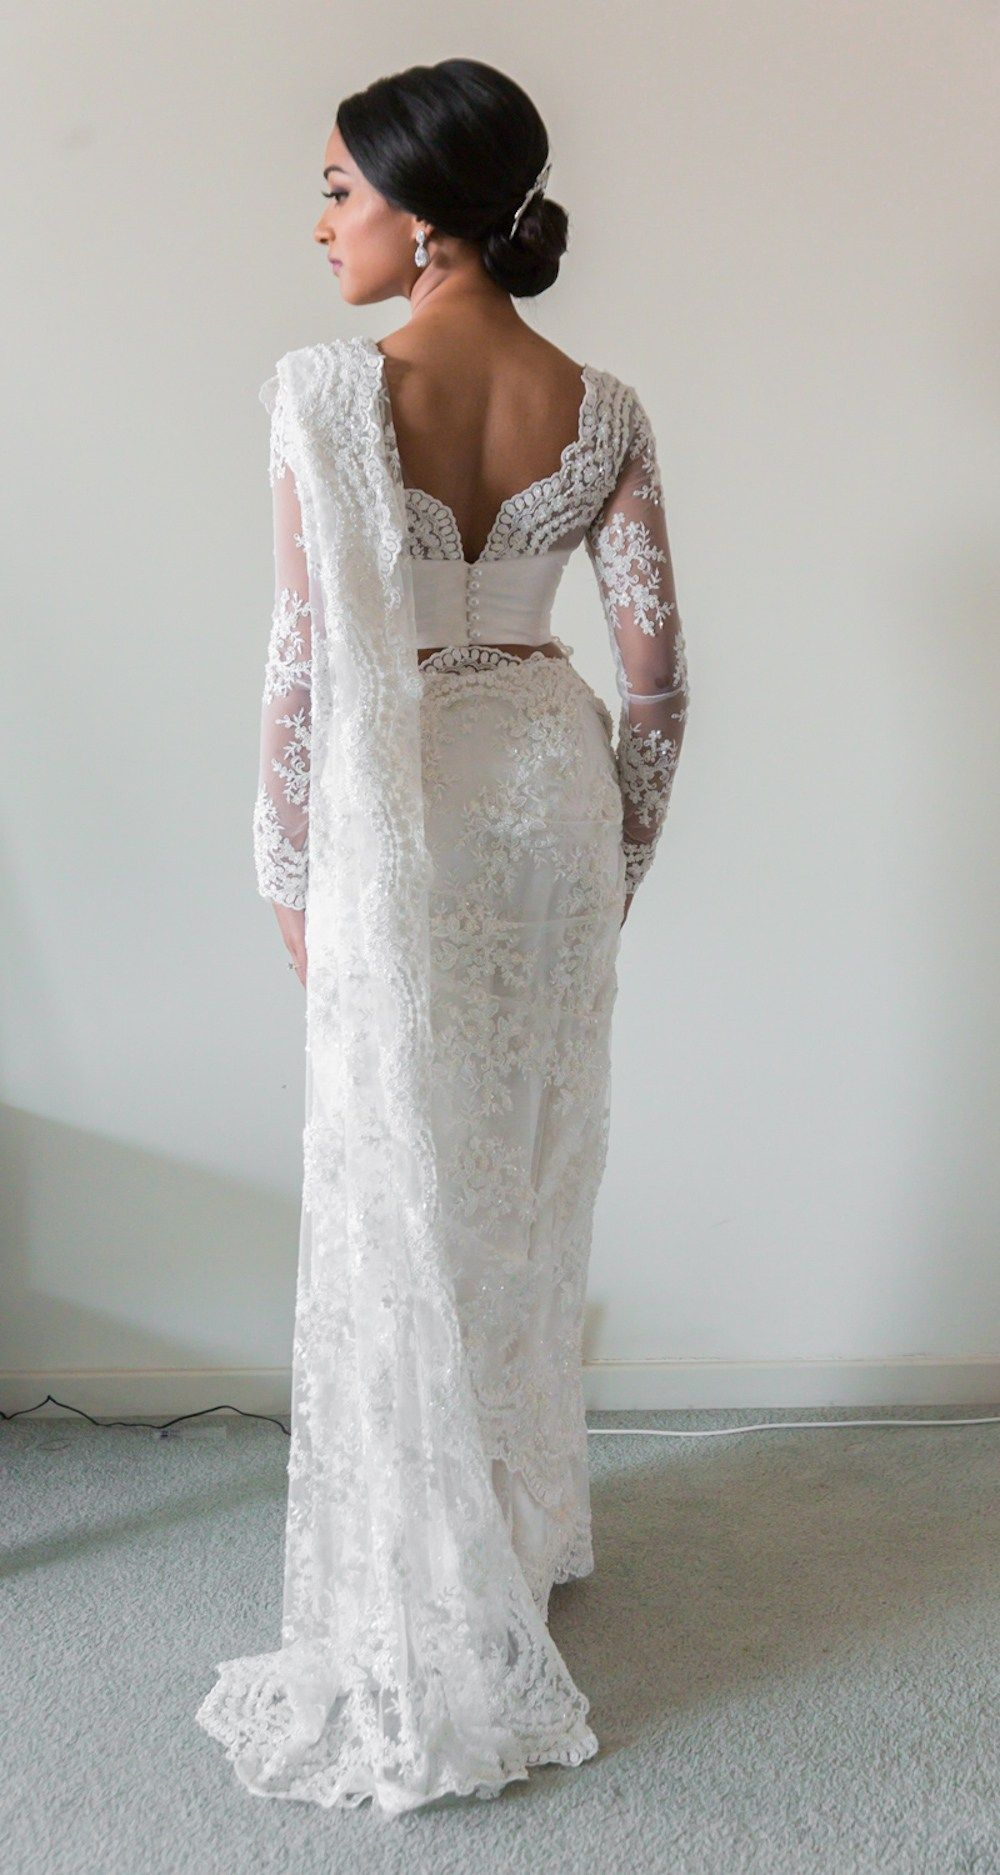 White Bridal Lace Saree South Asian Wedding Blog Think Shaadi